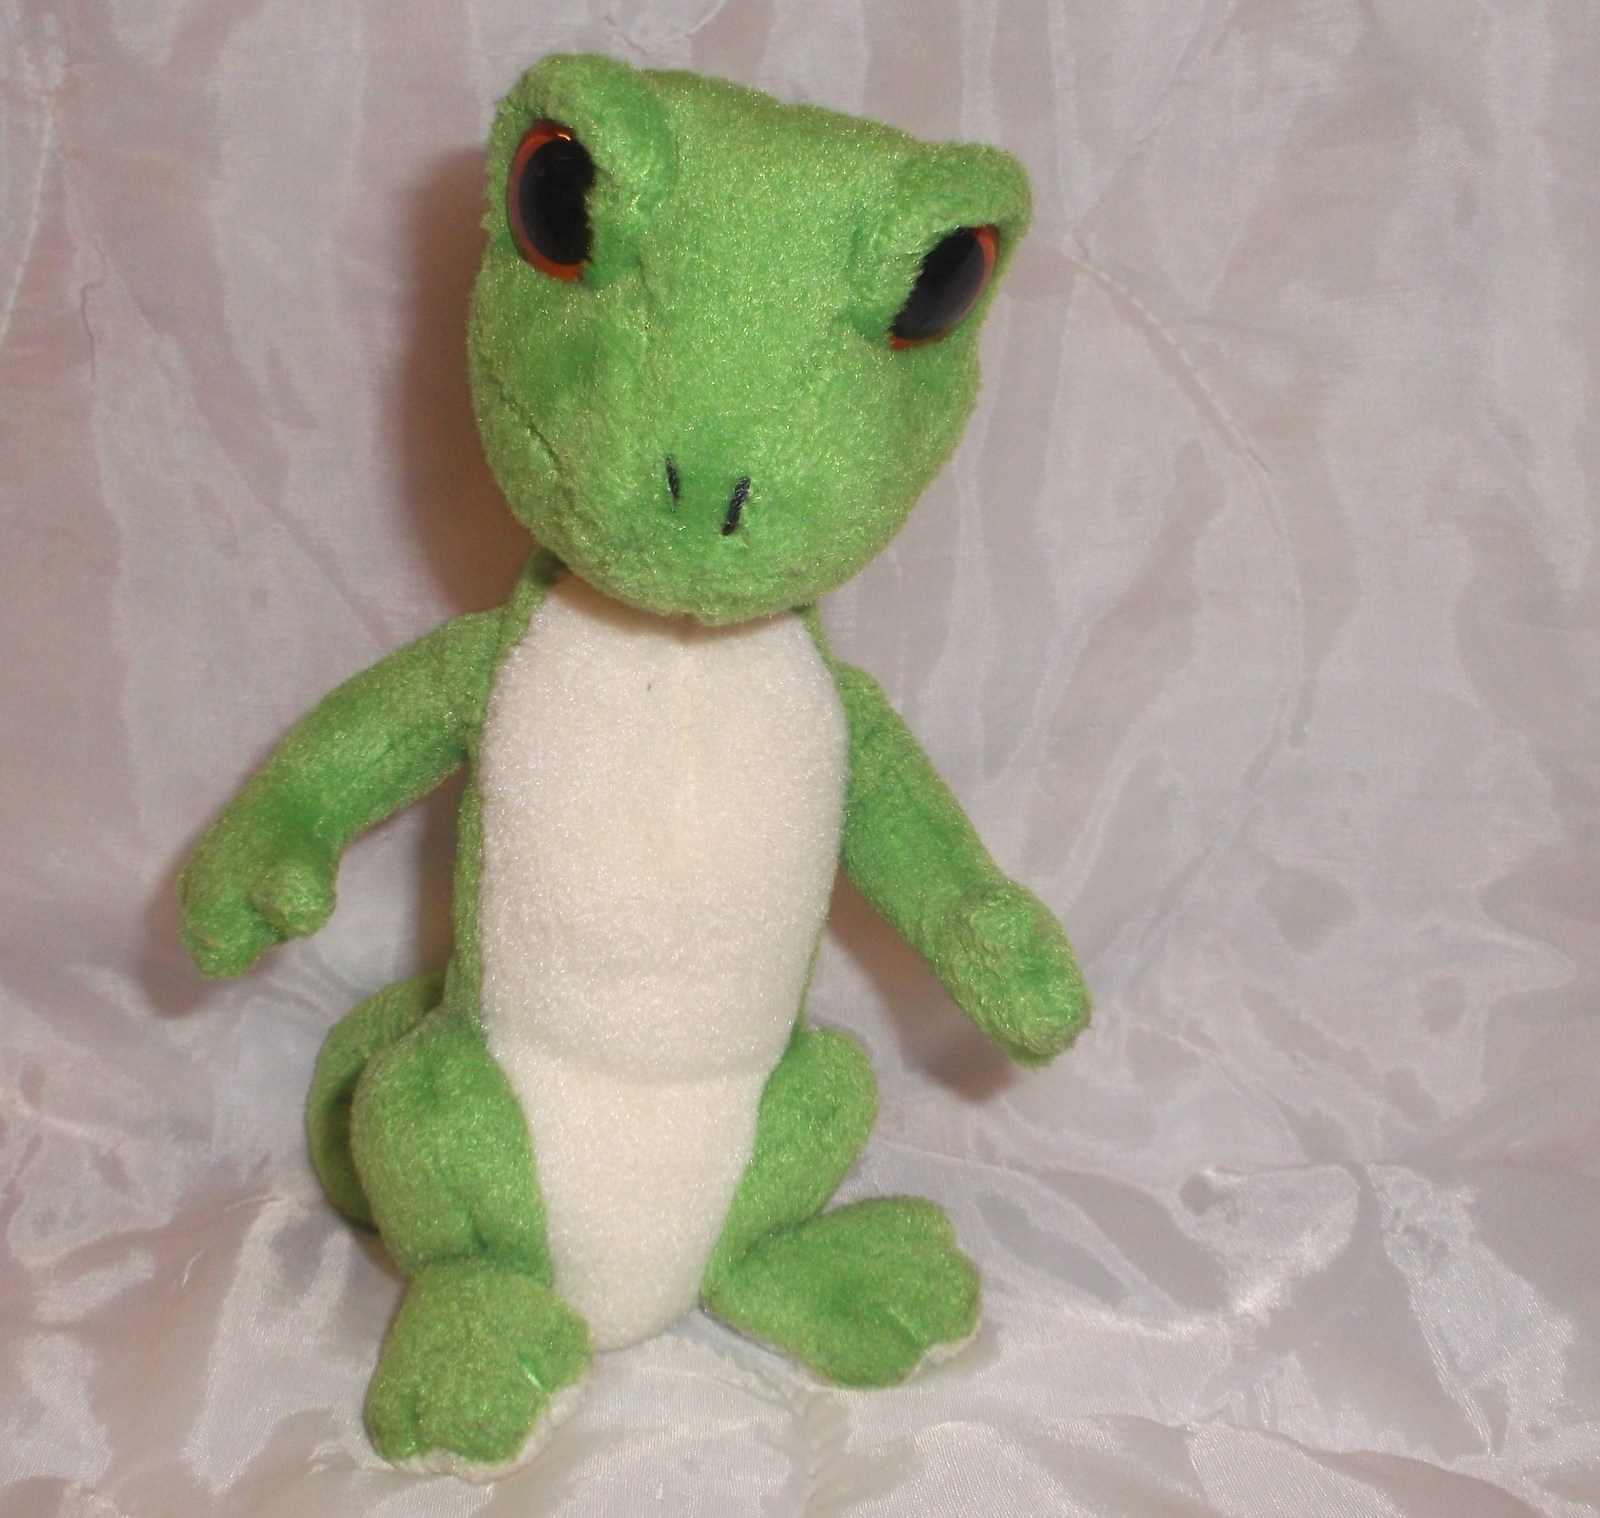 "Primary image for Ty Beanie Baby Gus Gecko Lizard Green Stuffed Plush Big Red Eyes Reptile 7"" Toy"